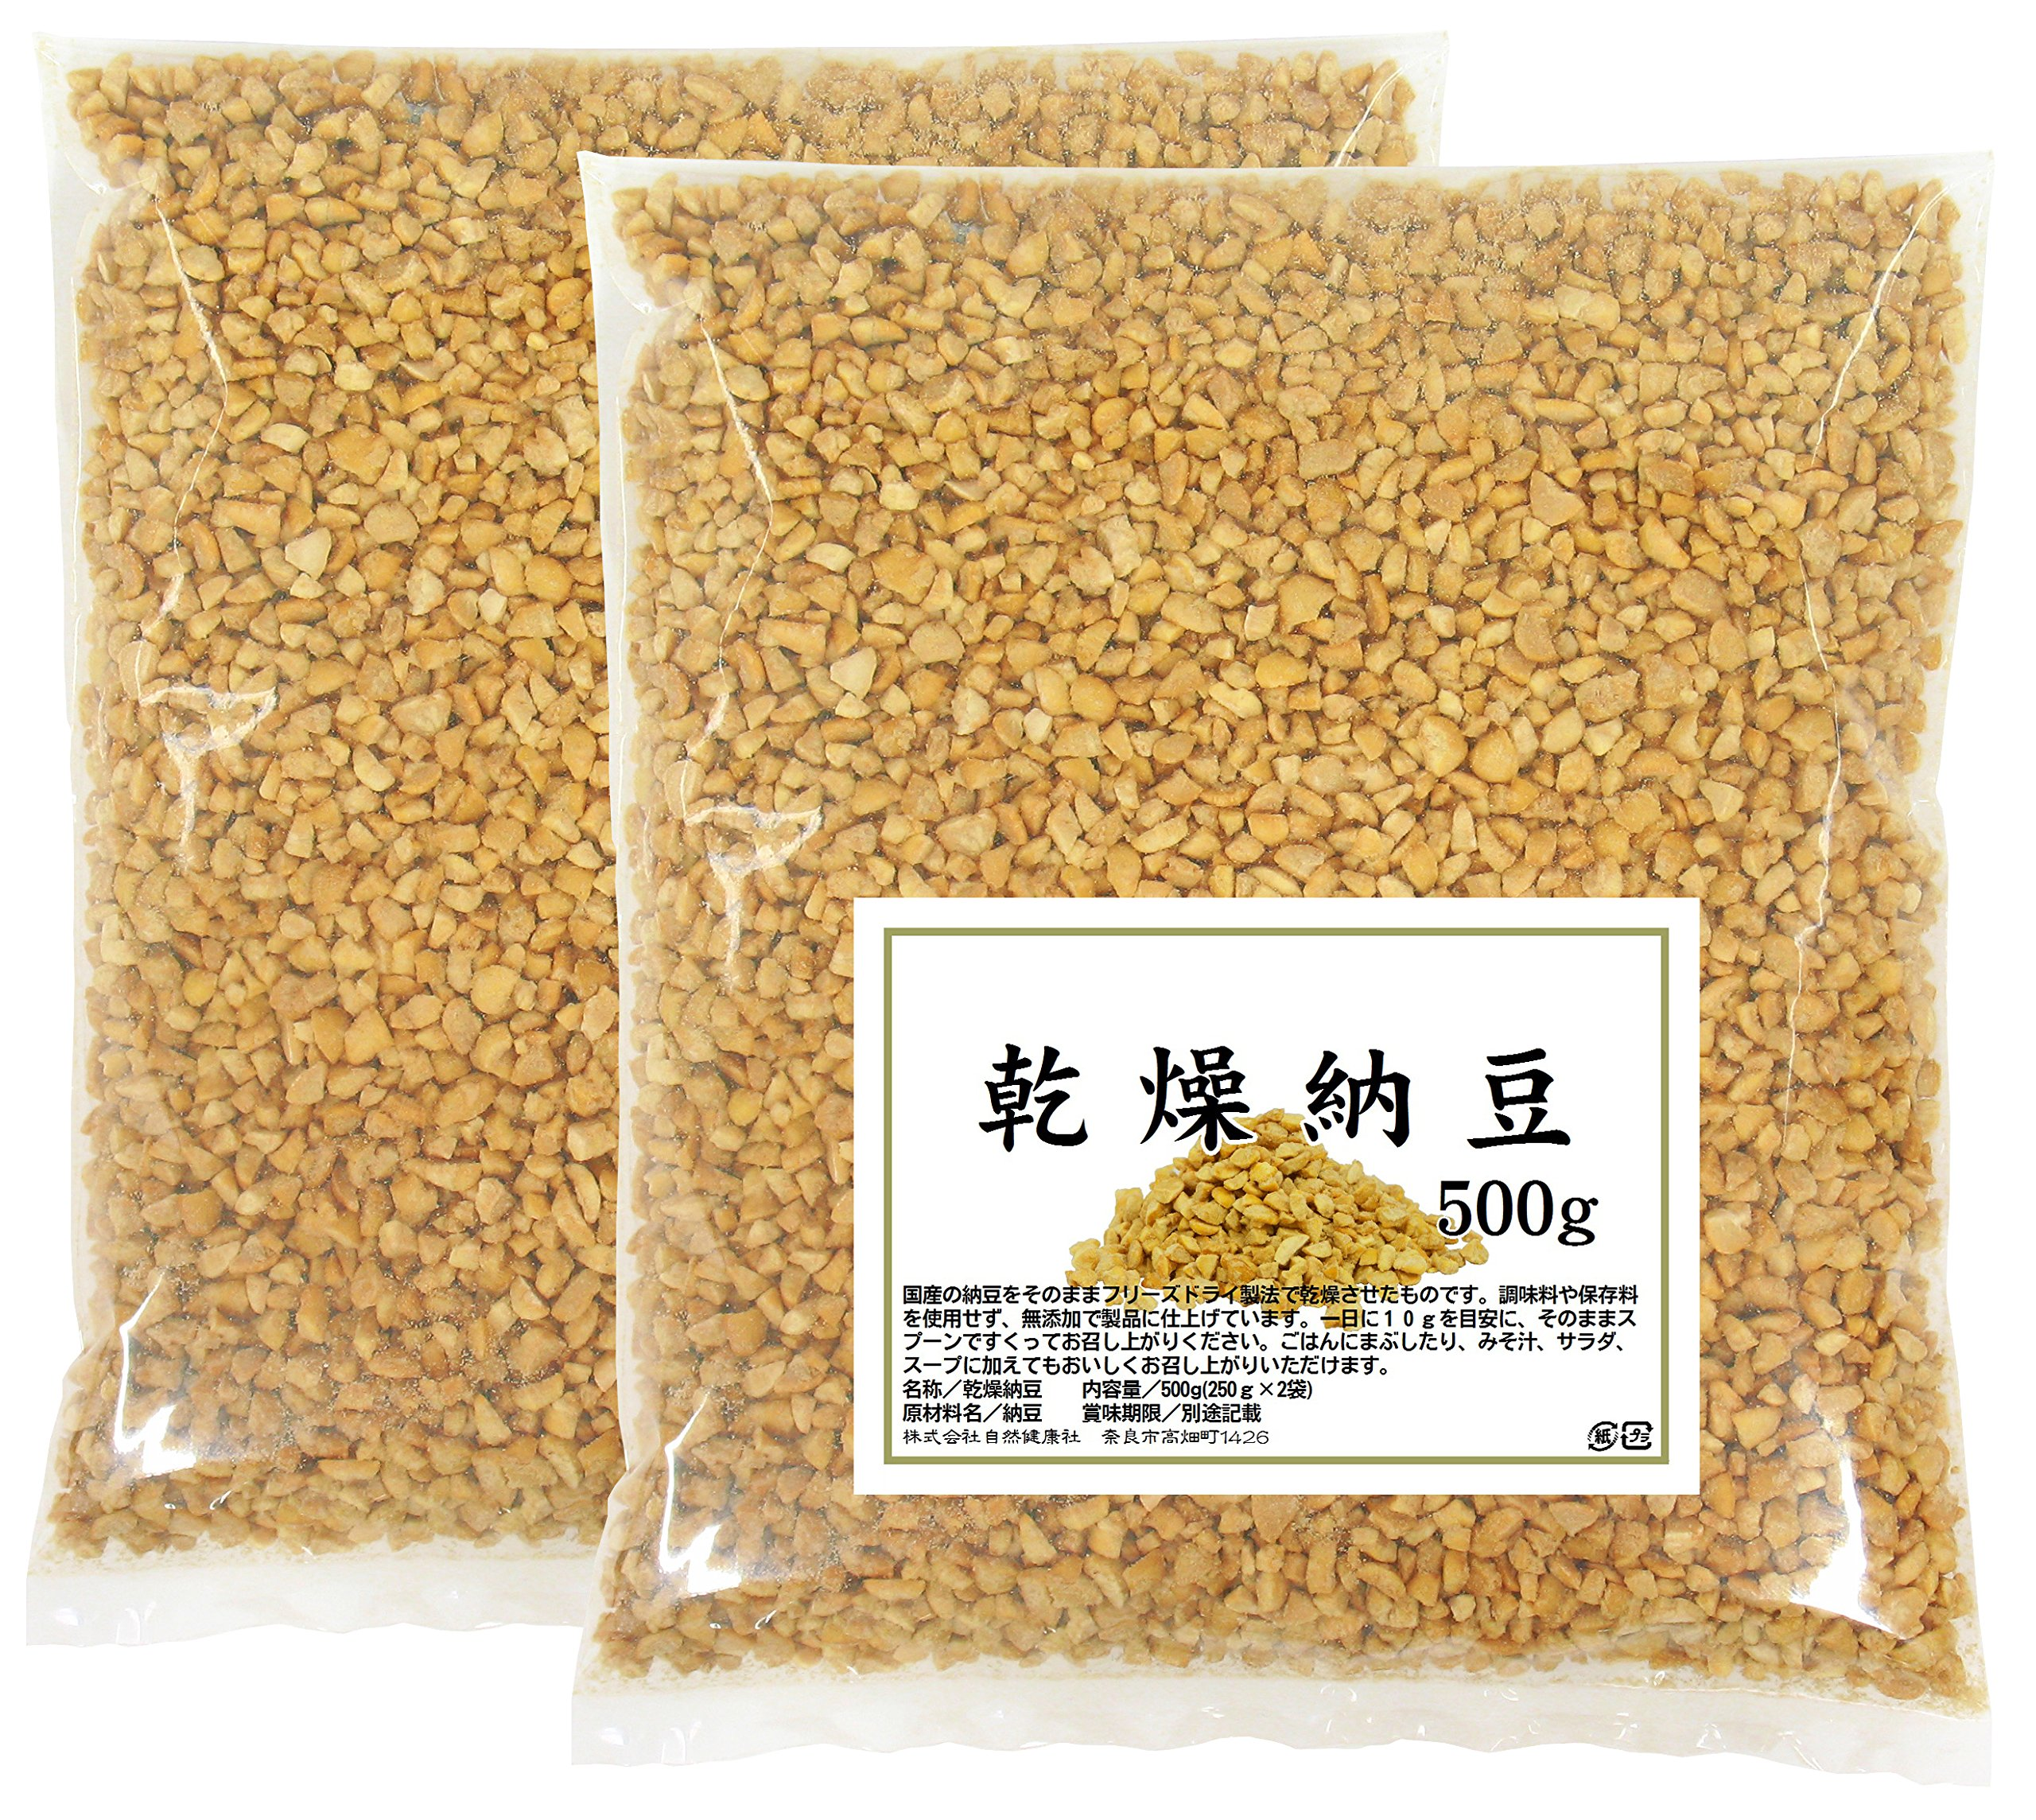 Japanese Freeze Dried Natto (Fermented Soy Beans) 250g x 2 Packs